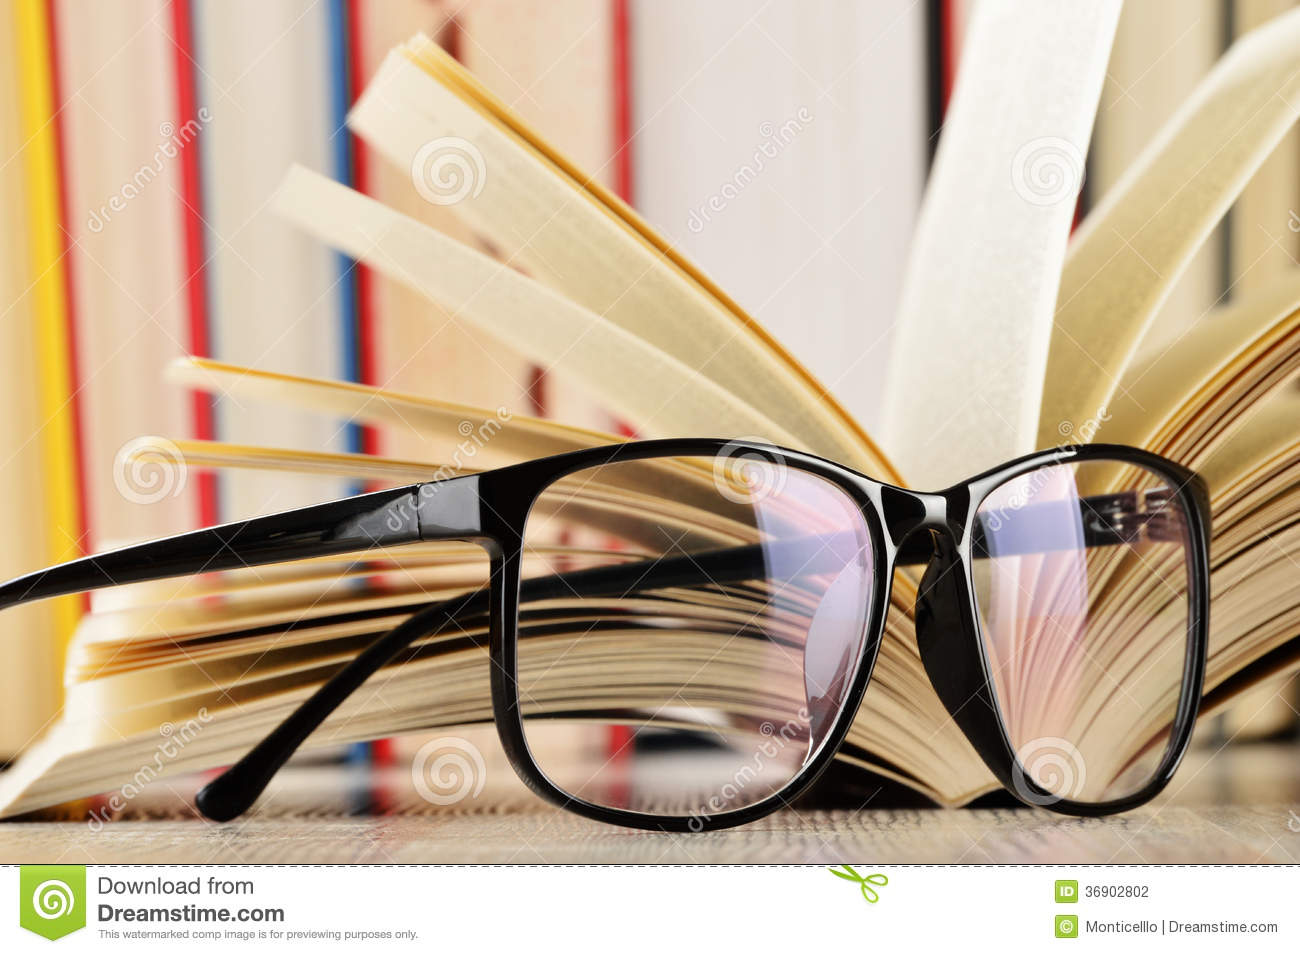 glasses on book - photo #17